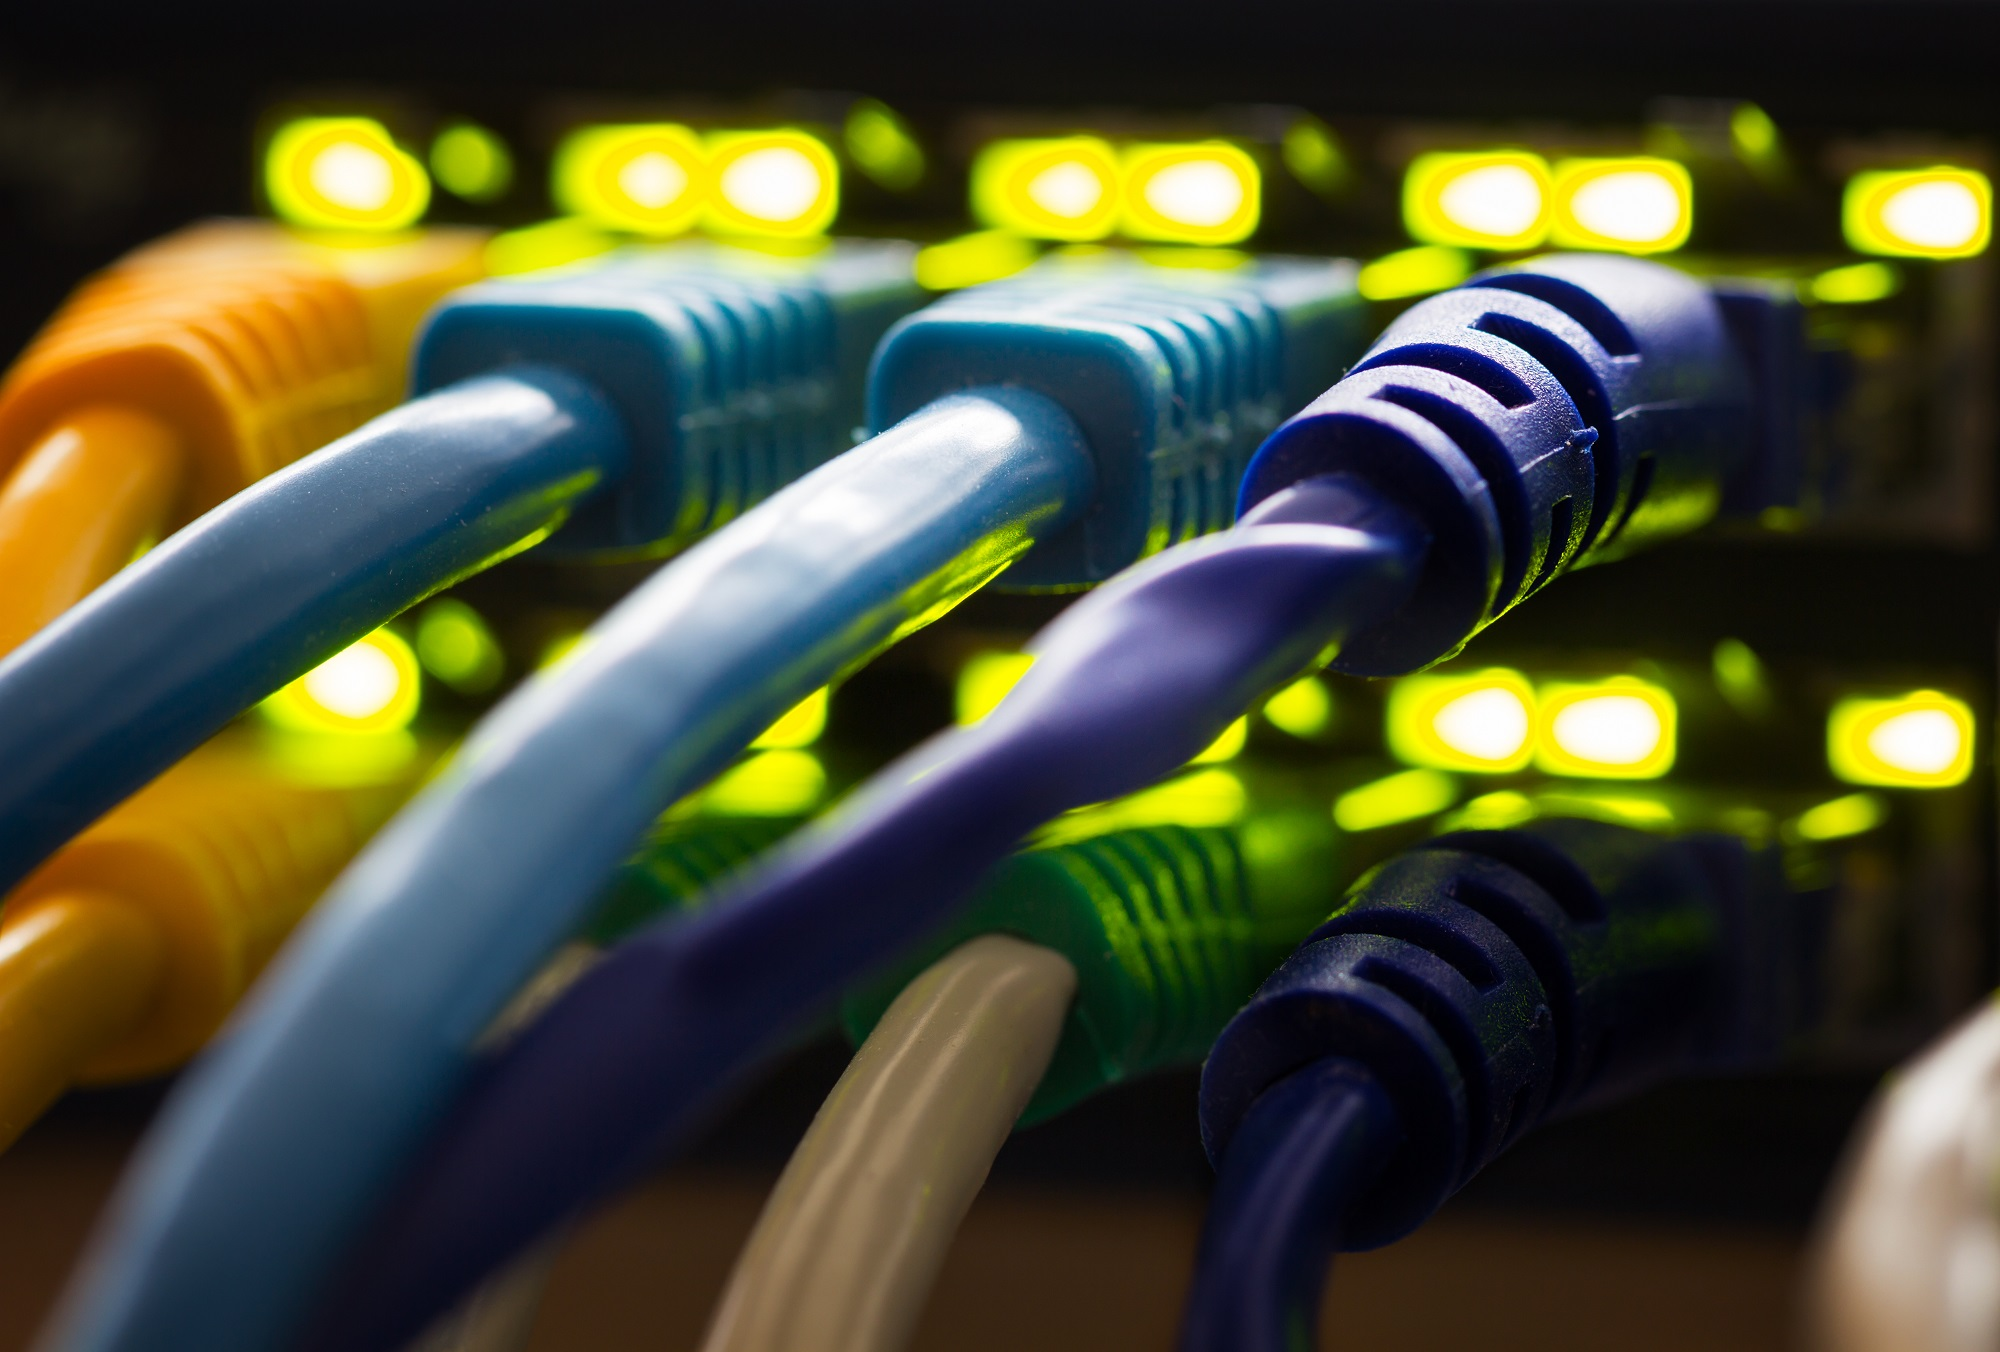 Broadband 'Zero Rating' Actually Costs Customers More, Study Finds